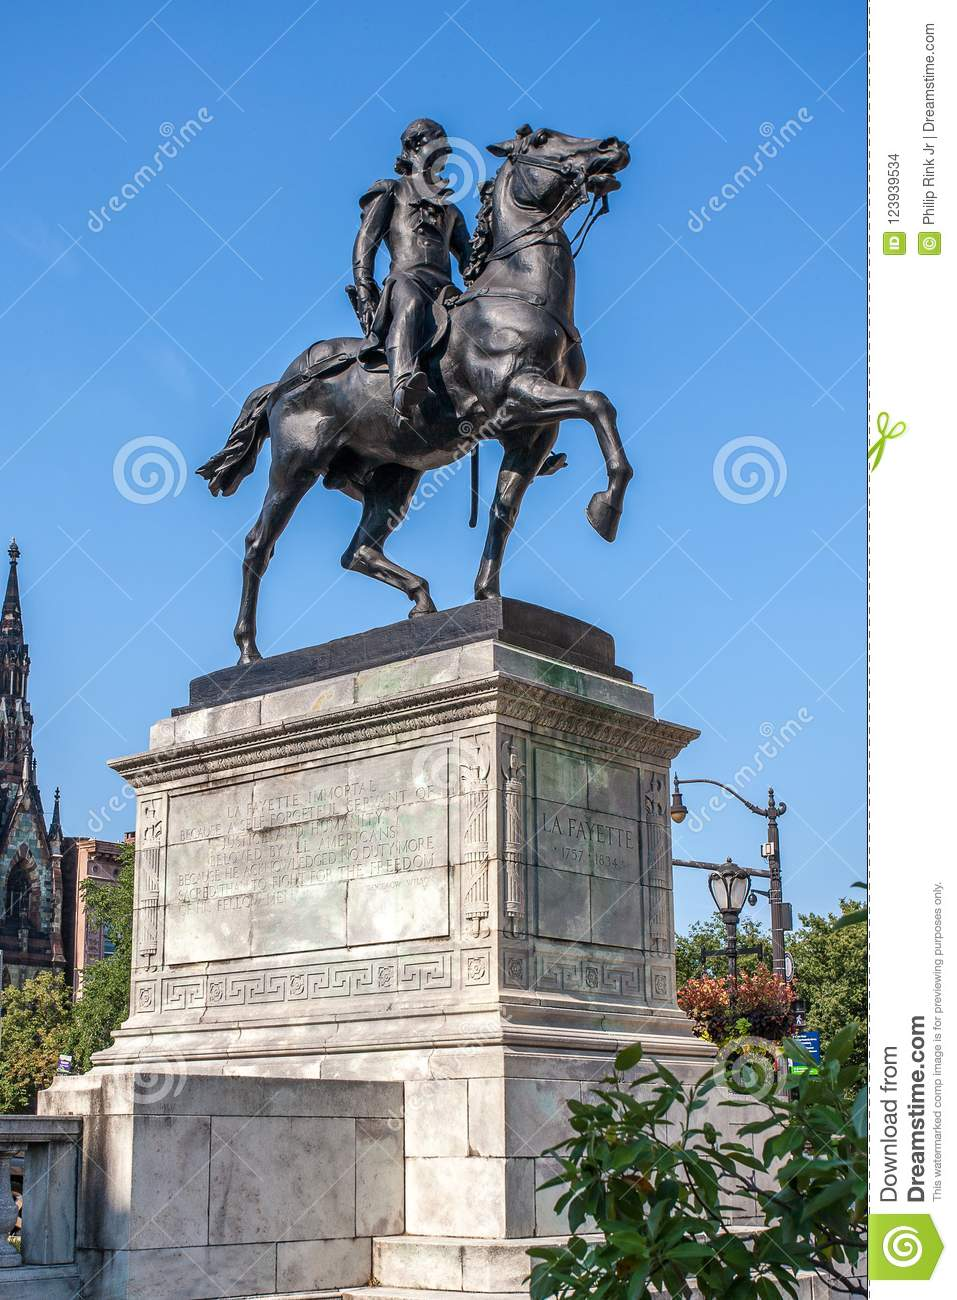 Lafayette Monument statue in Baltimore Maryland